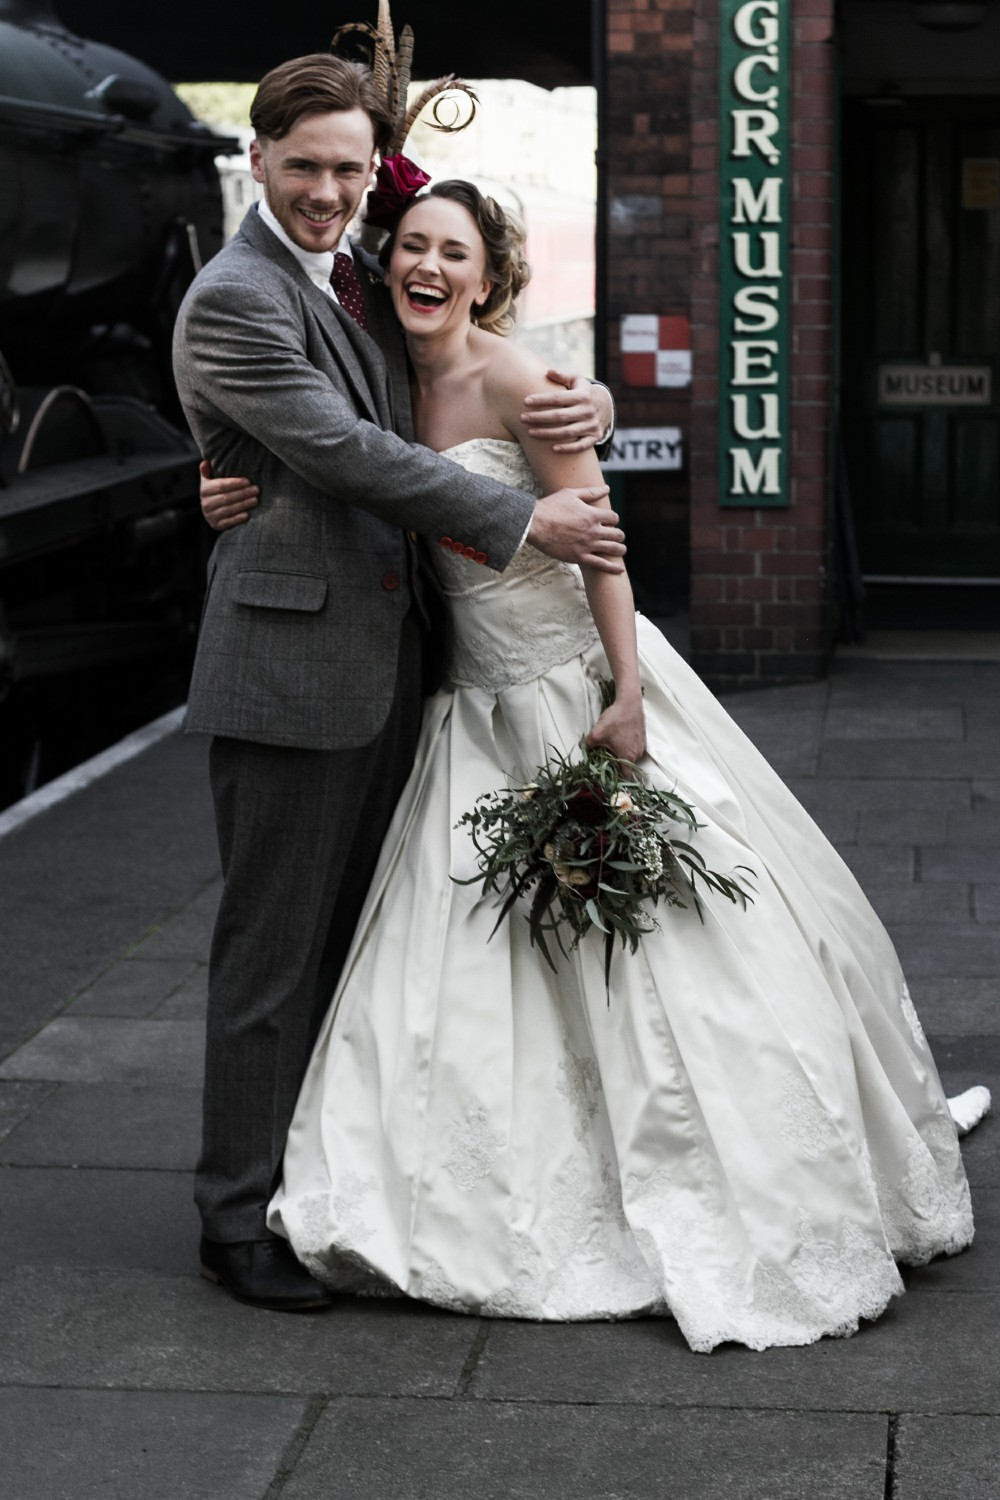 Iso Elegant Photography - Leicester wedding network - Railway wedding - vintage wedding 5